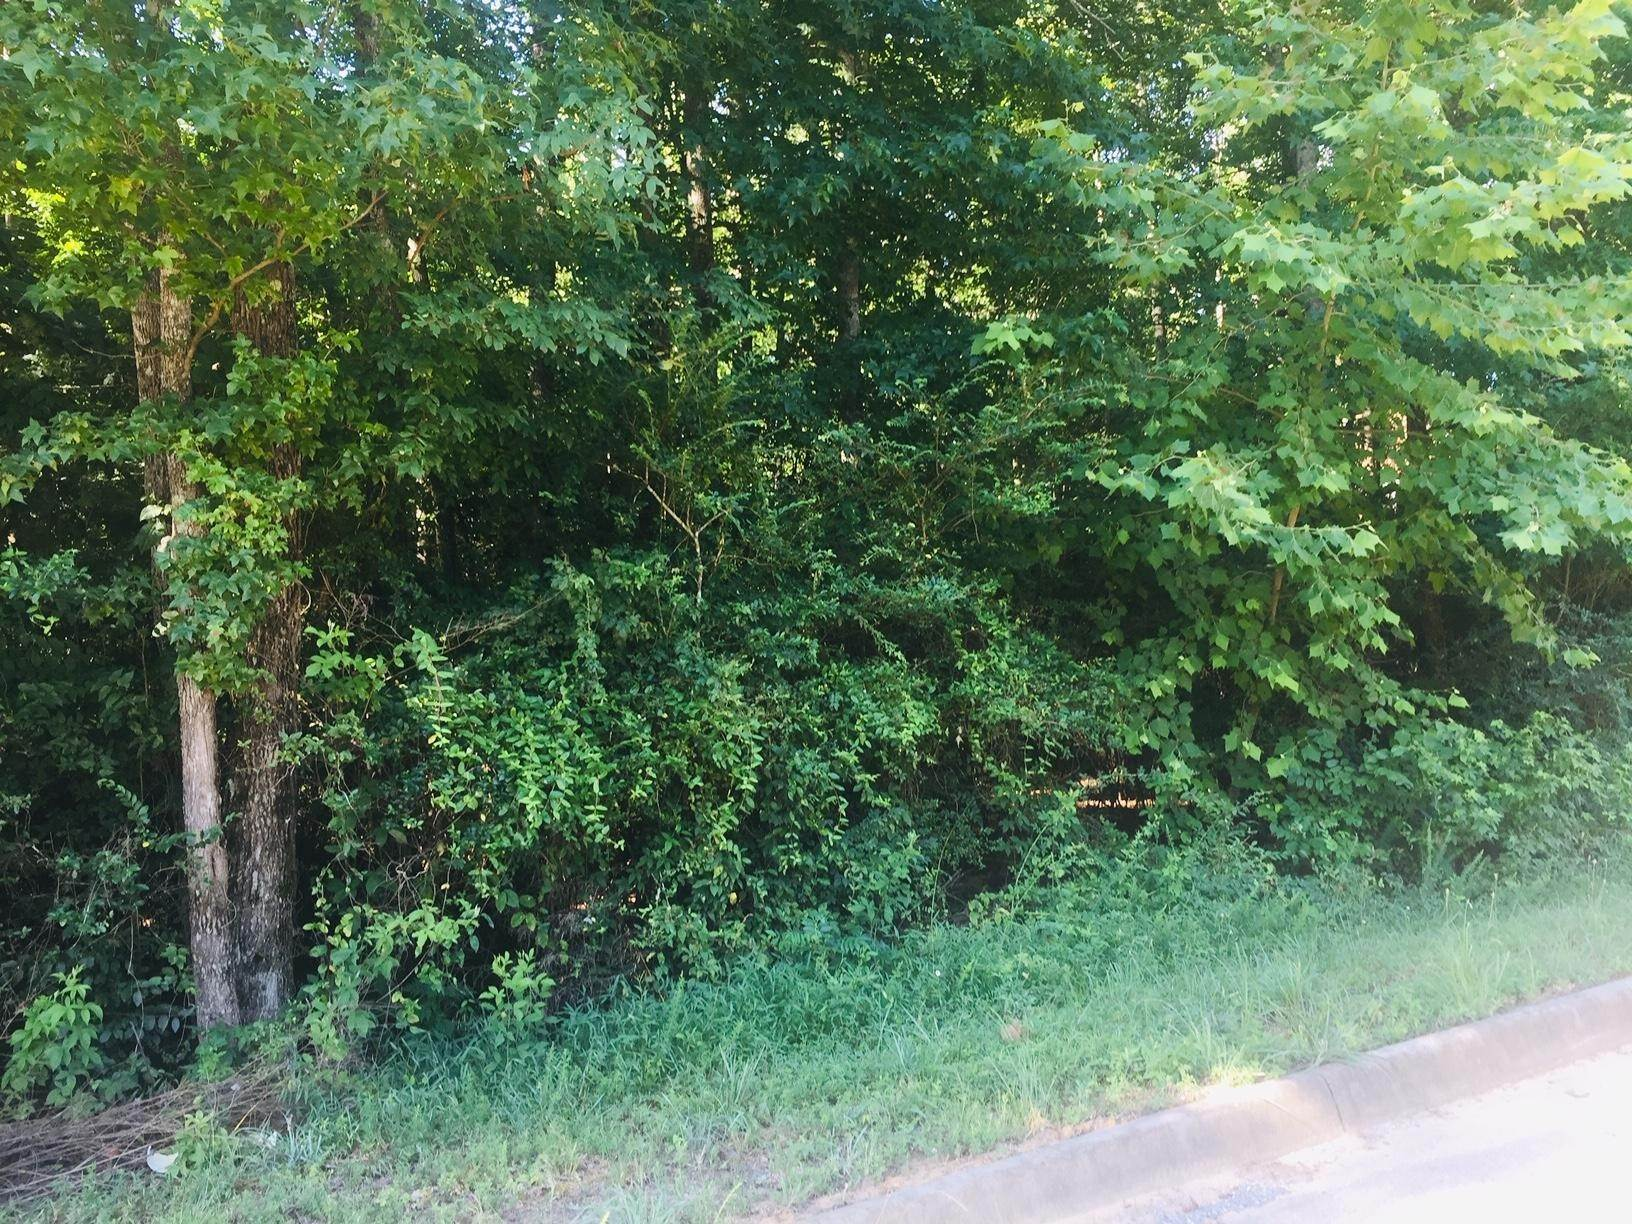 Land for Sale at County Rd 784 Etowah, Tennessee 37331 United States